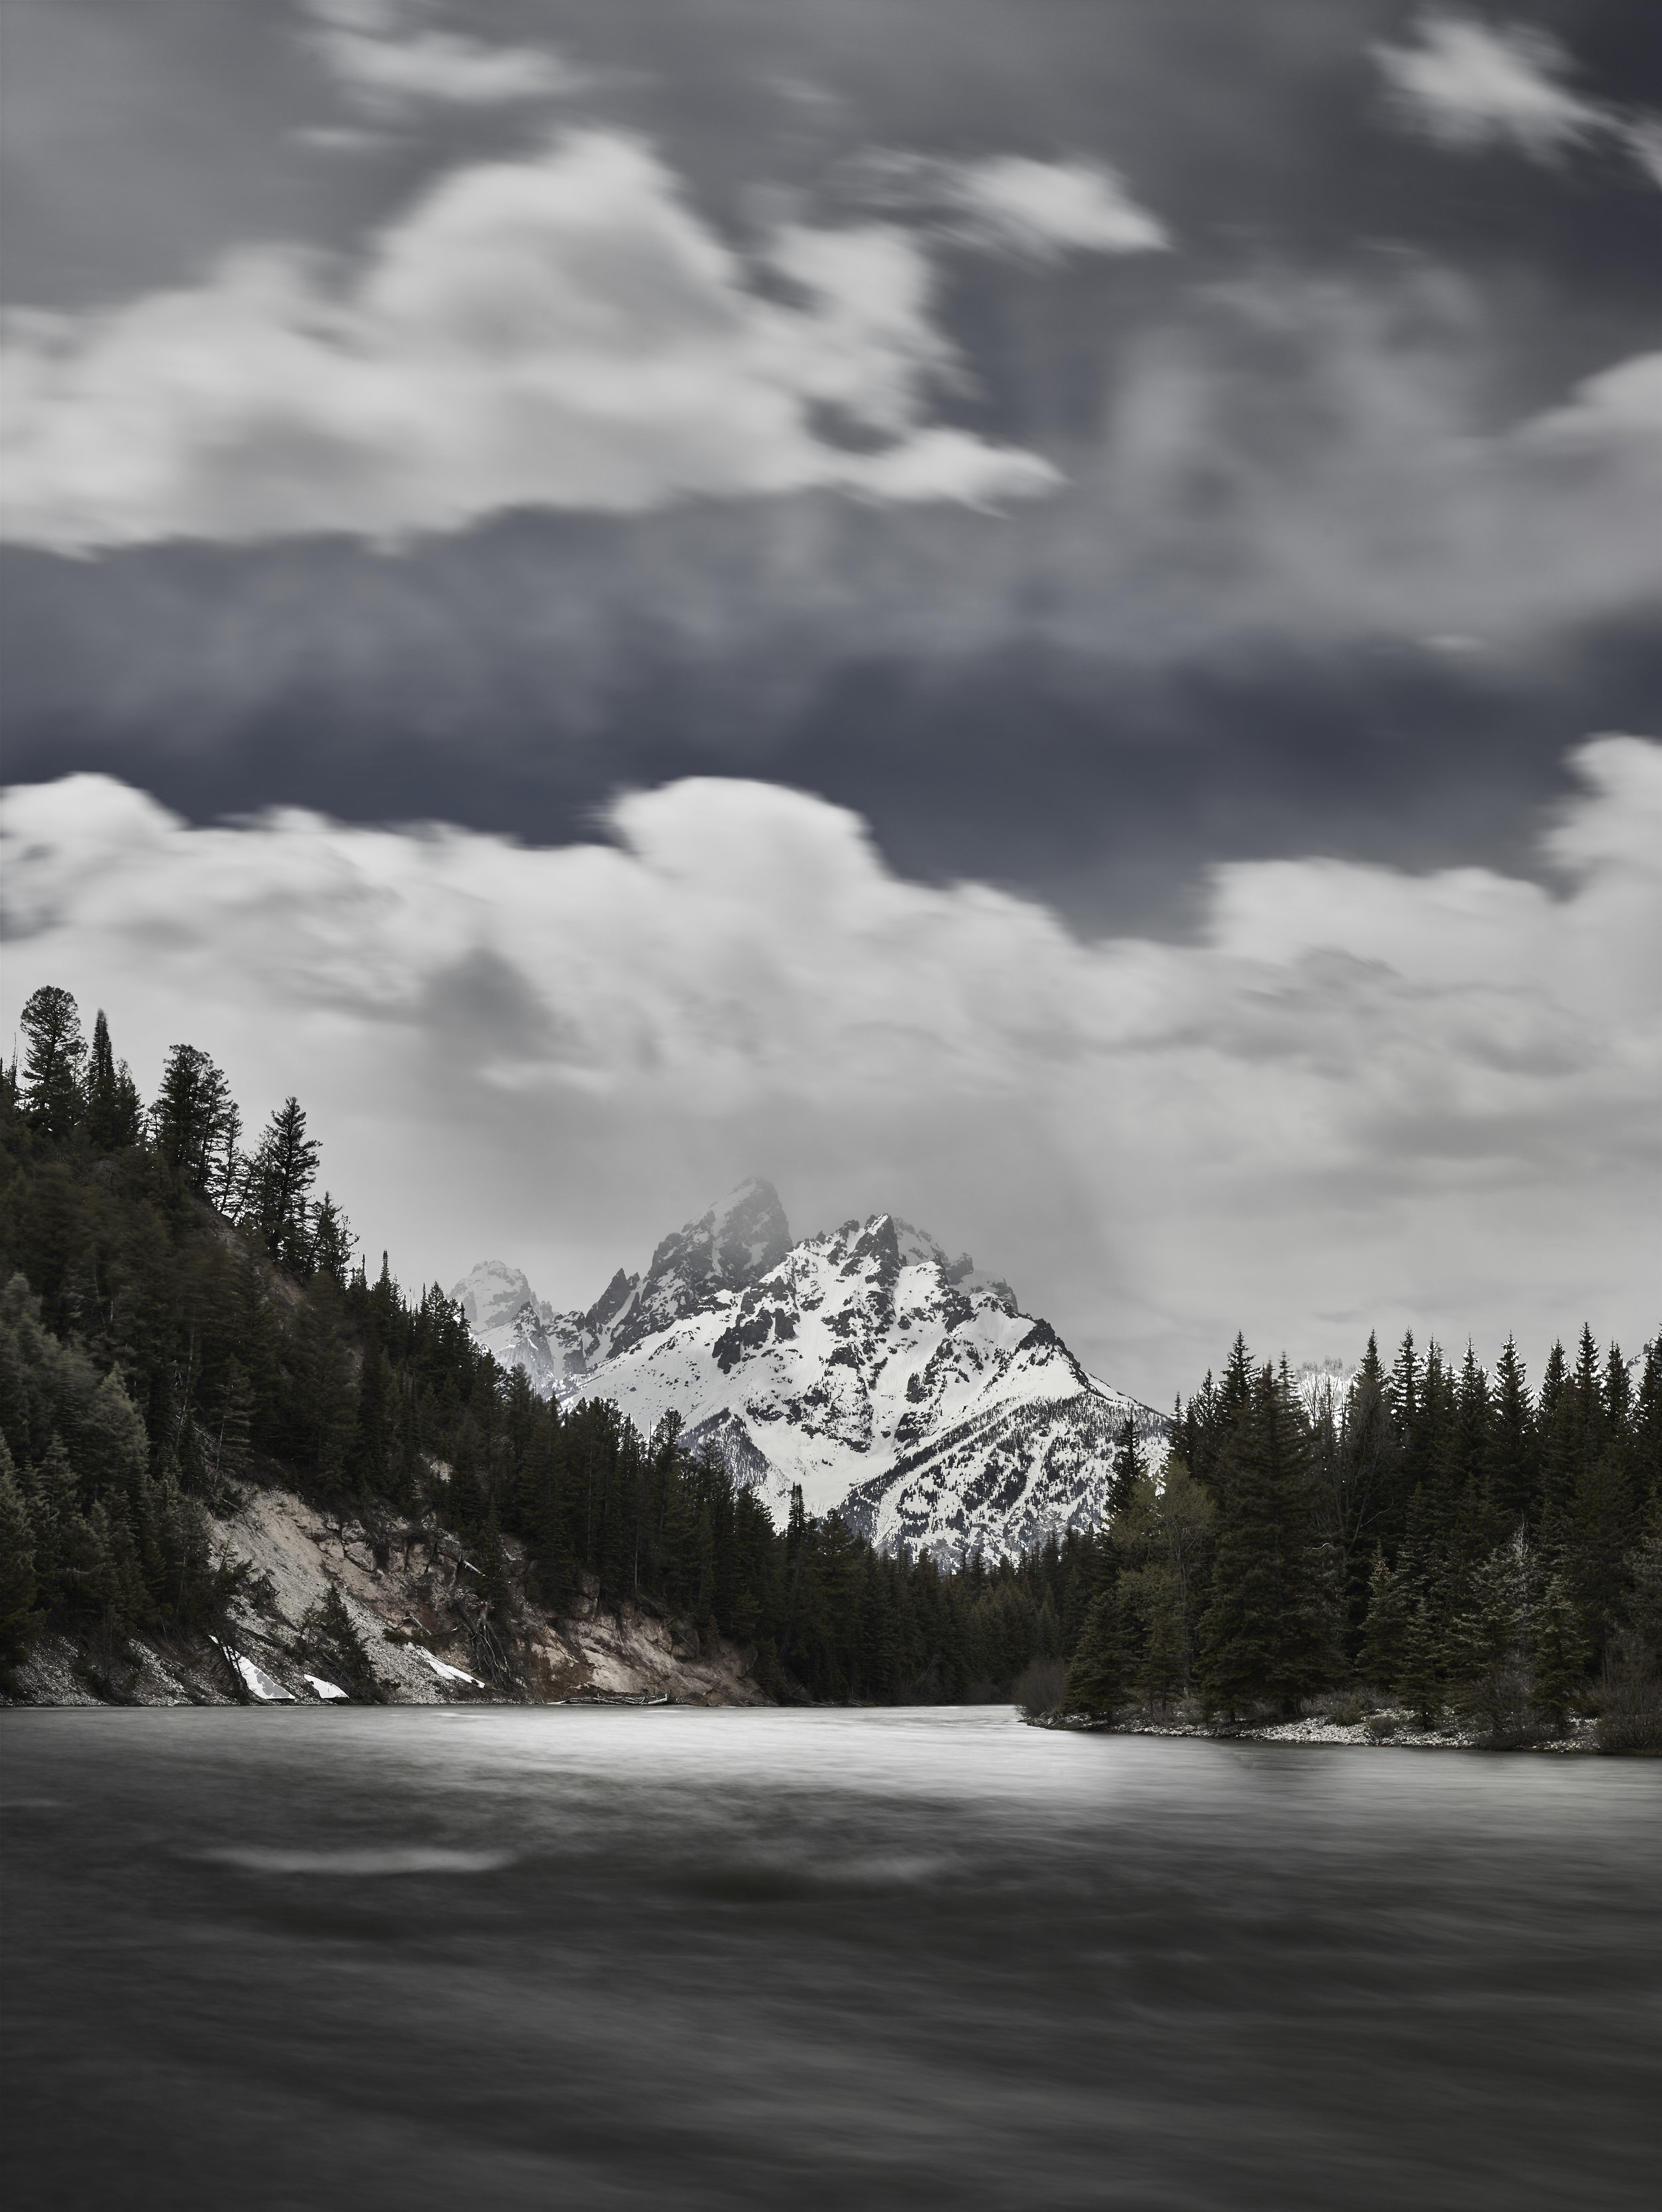 With 10 stops of ND, this 8 second exposure has desirable movement in both the Snake River and in the clouds over the Grand Teton.